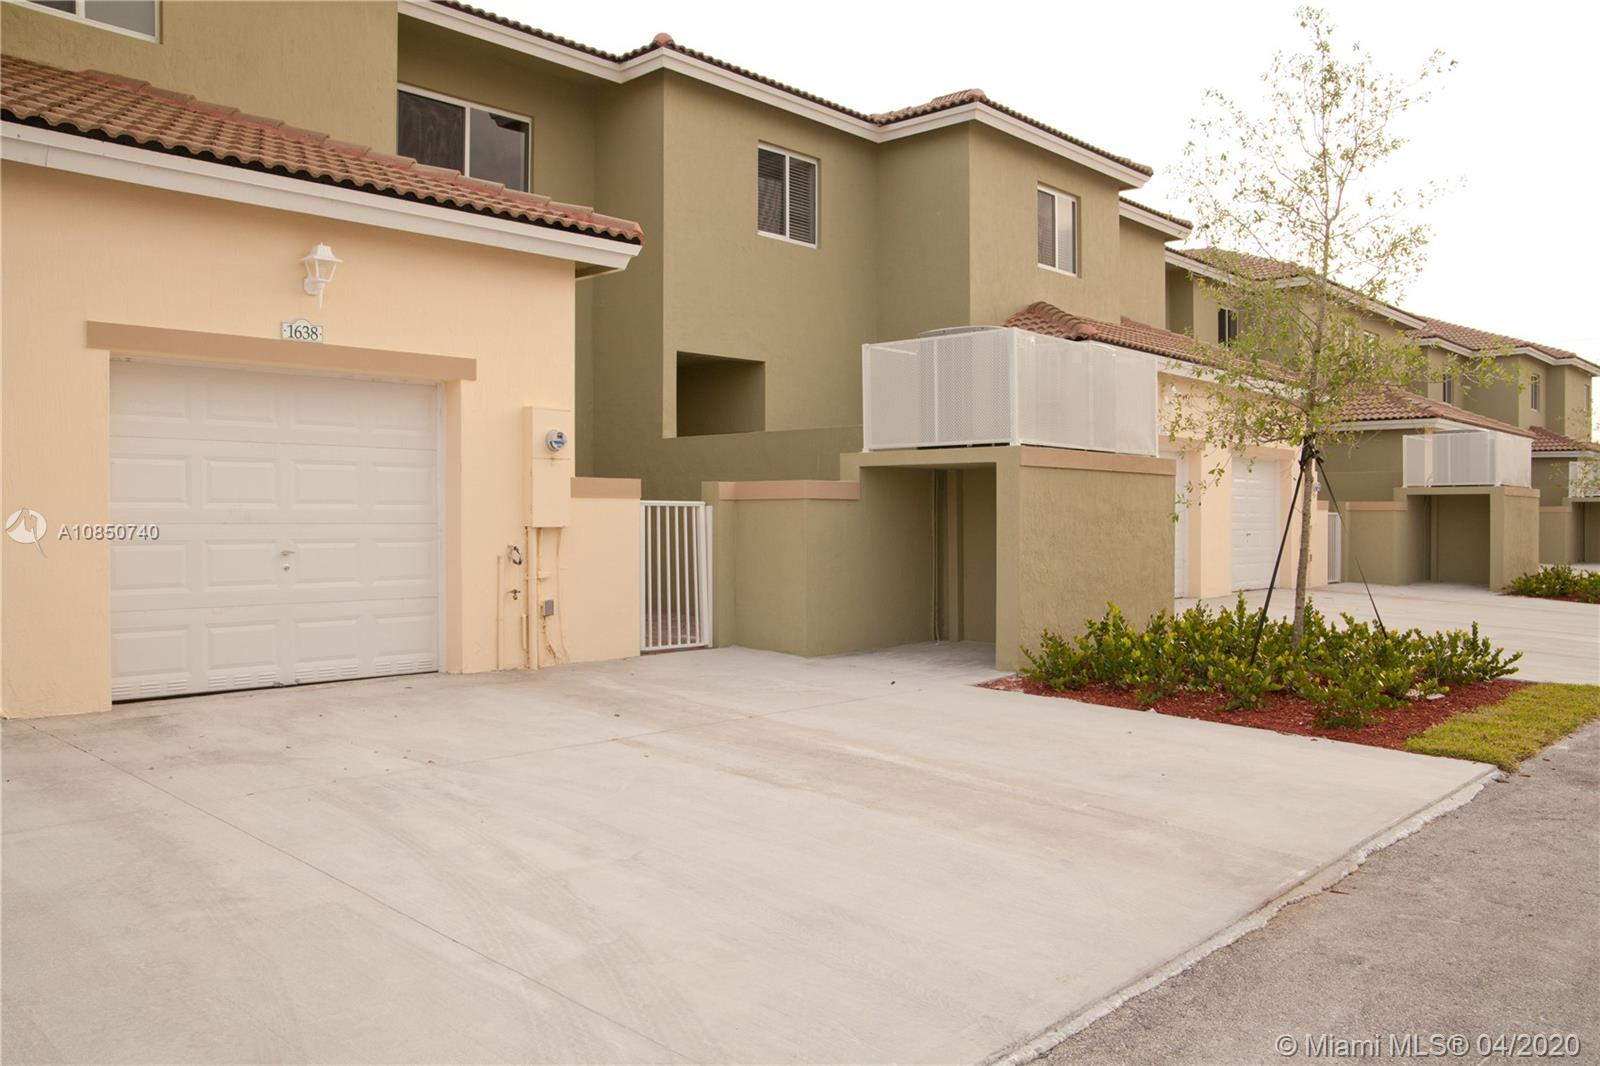 Beautiful 2 bedroom, 2.5 bath 2 story town home with 1 car garage and double driveway in Cali Greens at Keys Gate community.  Home features 18X18 tiled first floor, carpet upstairs, granite counters with tiled backsplash in kitchen and wood cabinets.  Upstairs has guest bedroom with en suite bath and master suite with huge closet and master bath.  Community includes pool, BBQ area, tennis courts, 24 hour roving security, AT&T cable and internet also included.  Must provide first month's rent and double security deposit.